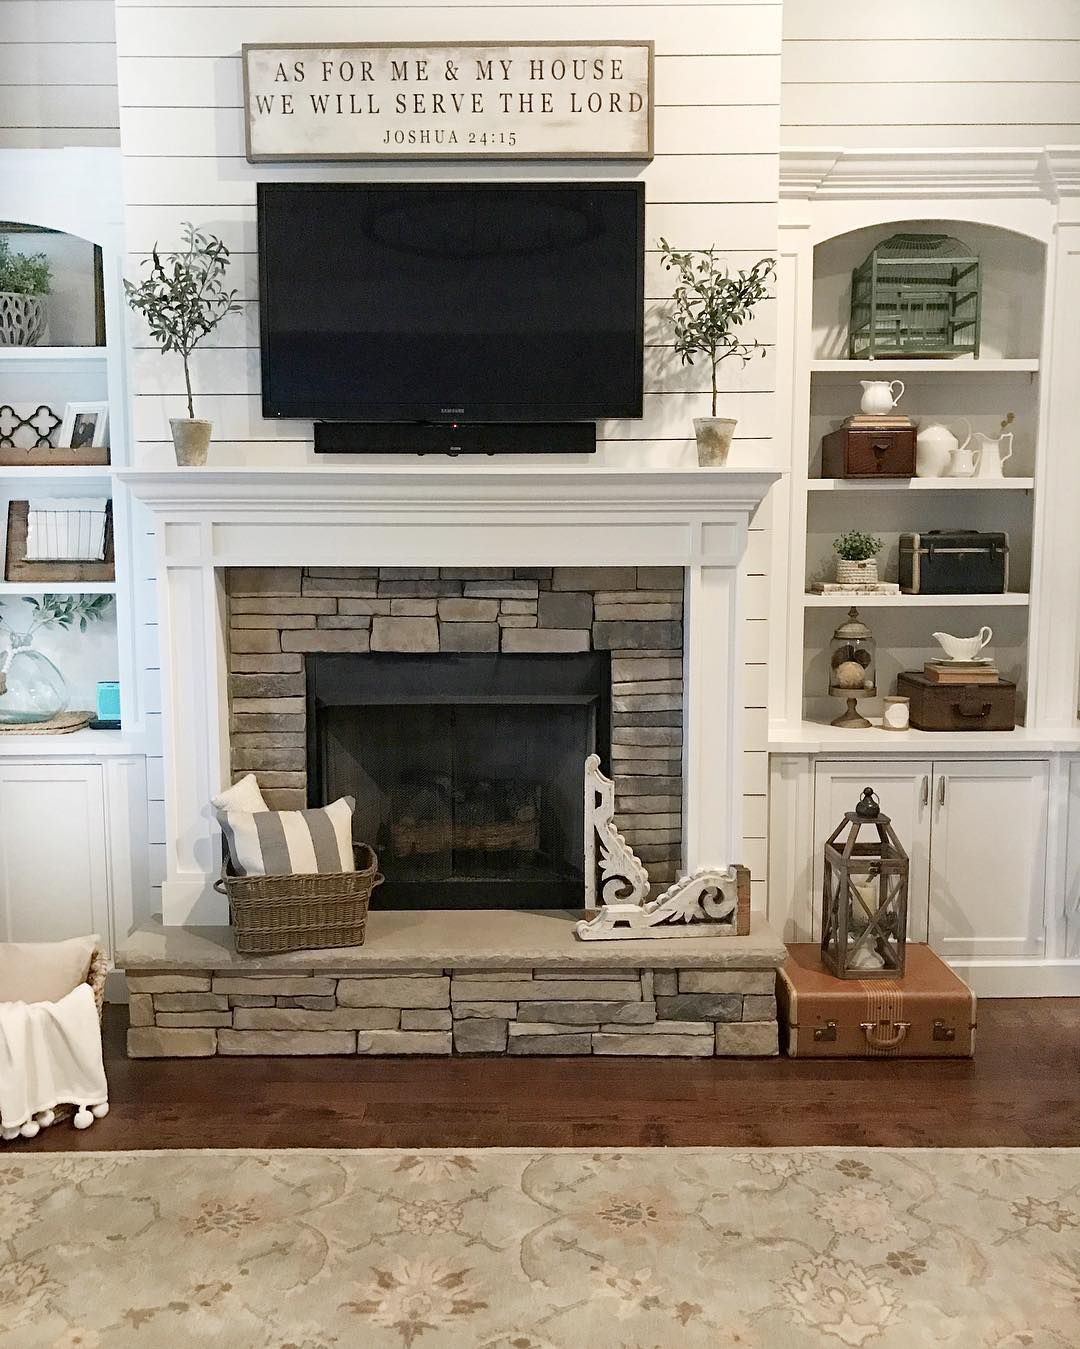 3 855 Likes 145 Comments Alicia Our Vintage Nest Ourvintagenest On Inst Farm House Living Room Farmhouse Style Living Room Farmhouse Decor Living Room